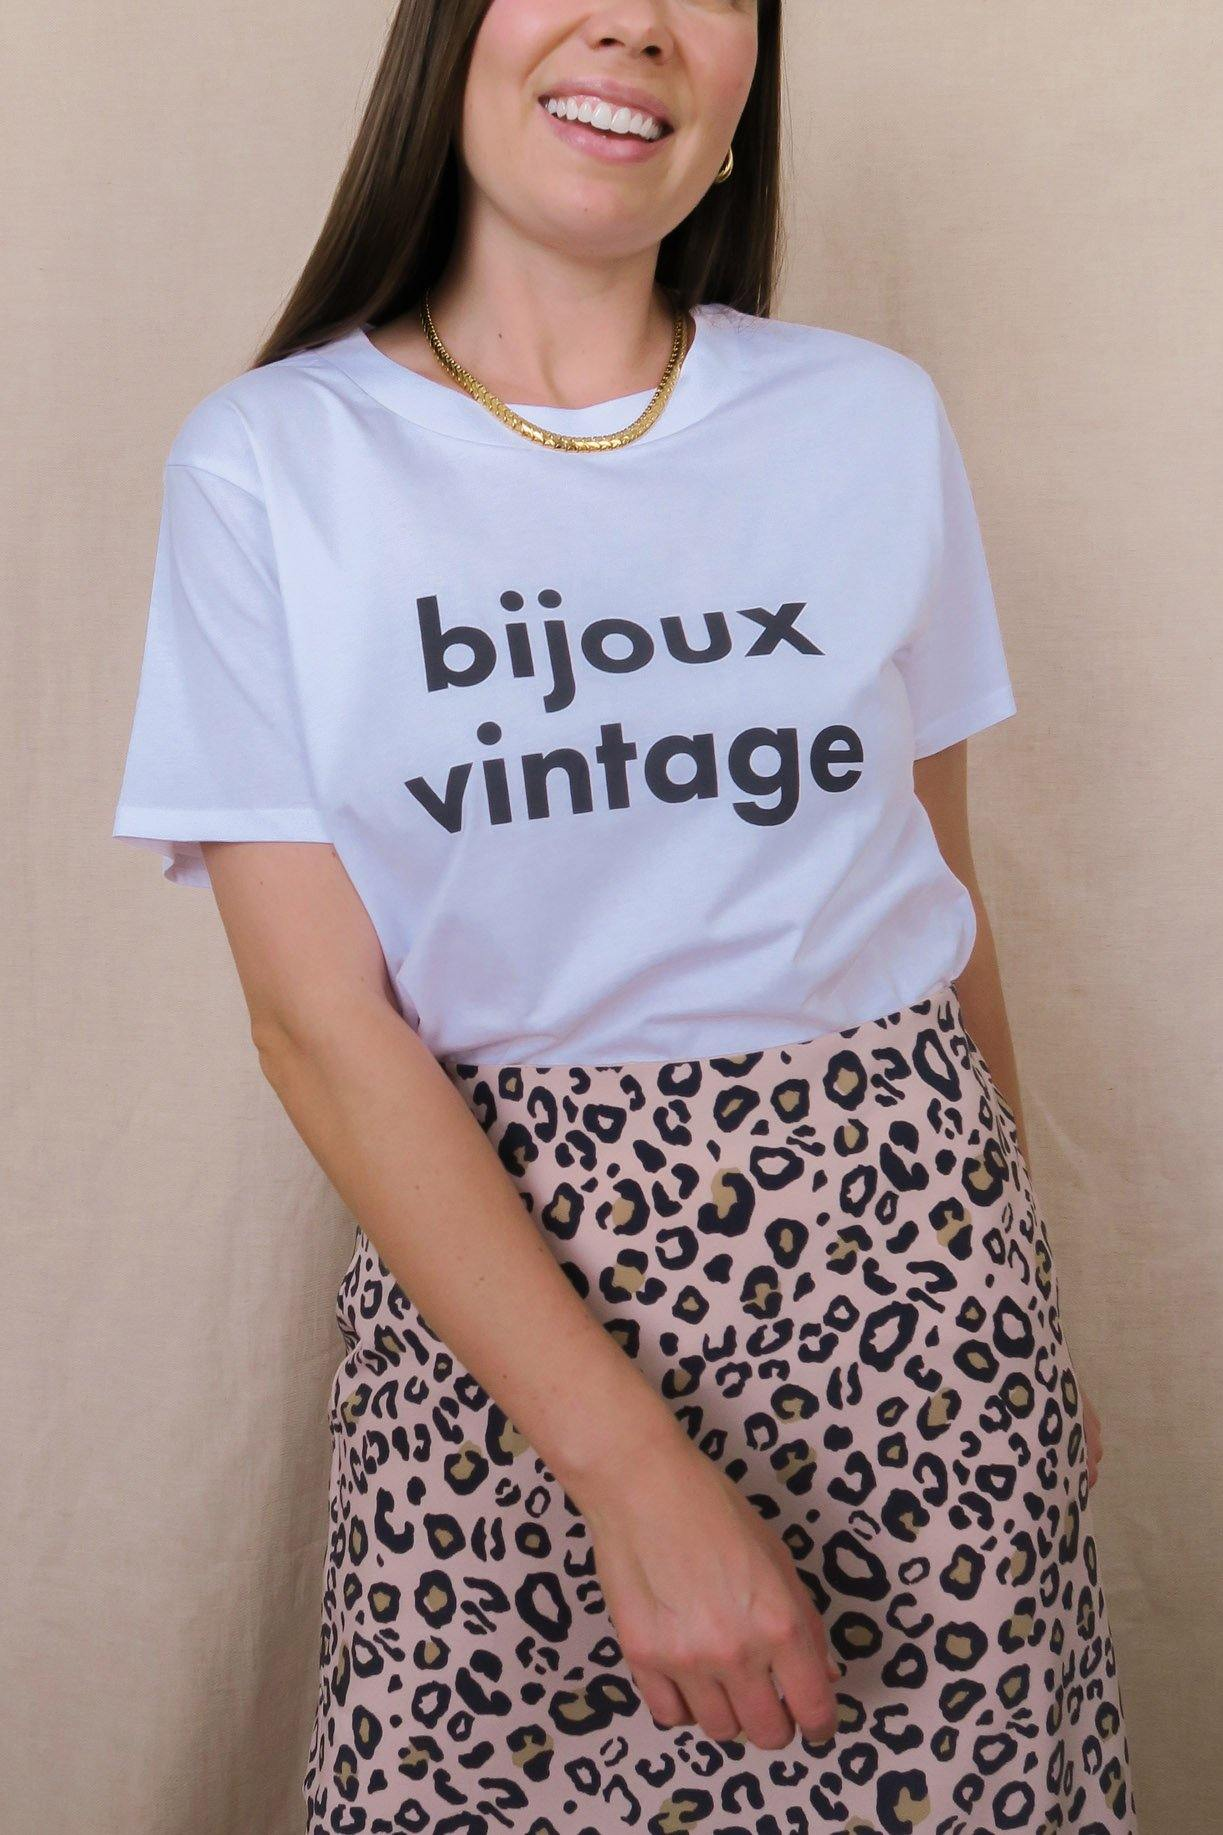 Bijoux vintage graphic t from Sweet & Spark.